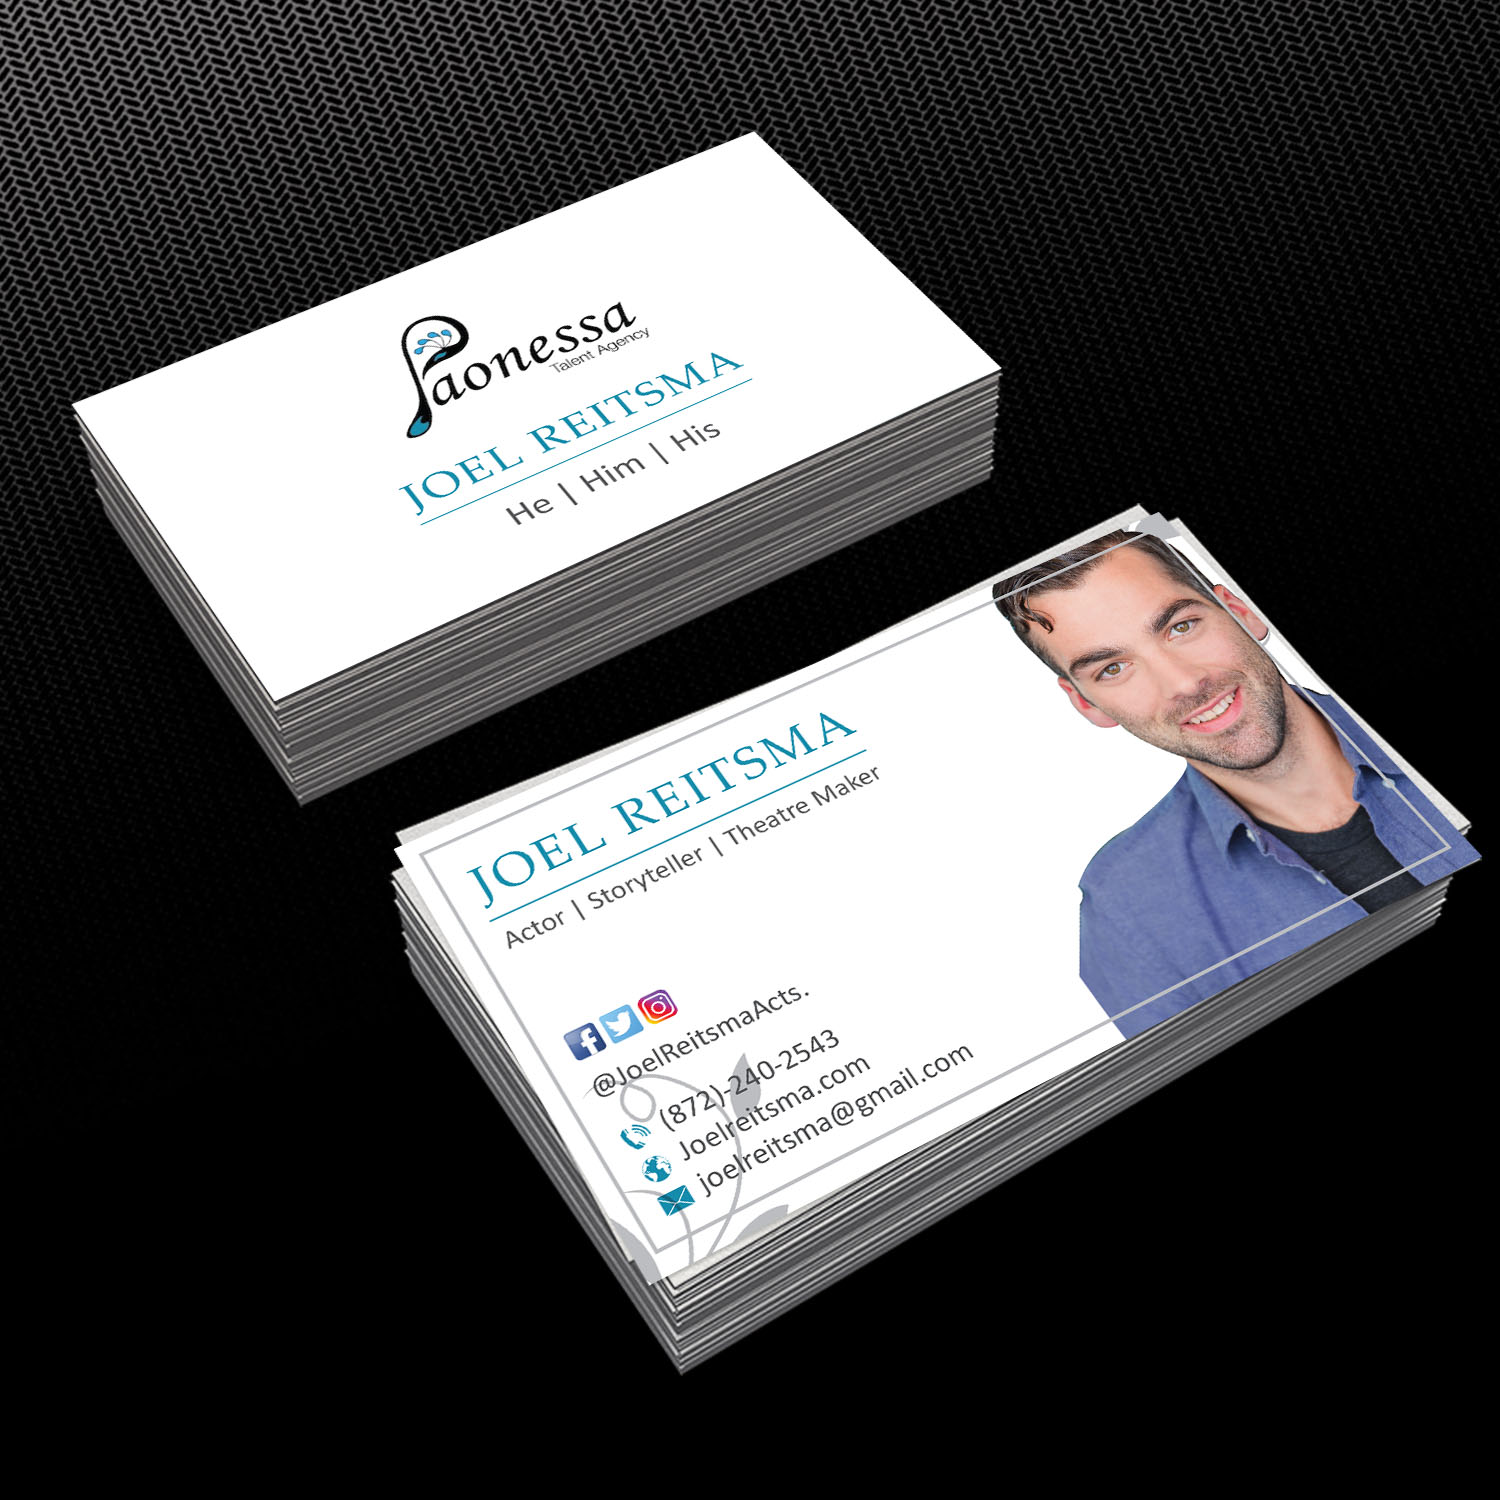 Audacieux srieux business card design for joel reitsma by business card design by creative jiniya for joel reitsma actor business cards design 17388680 magicingreecefo Choice Image